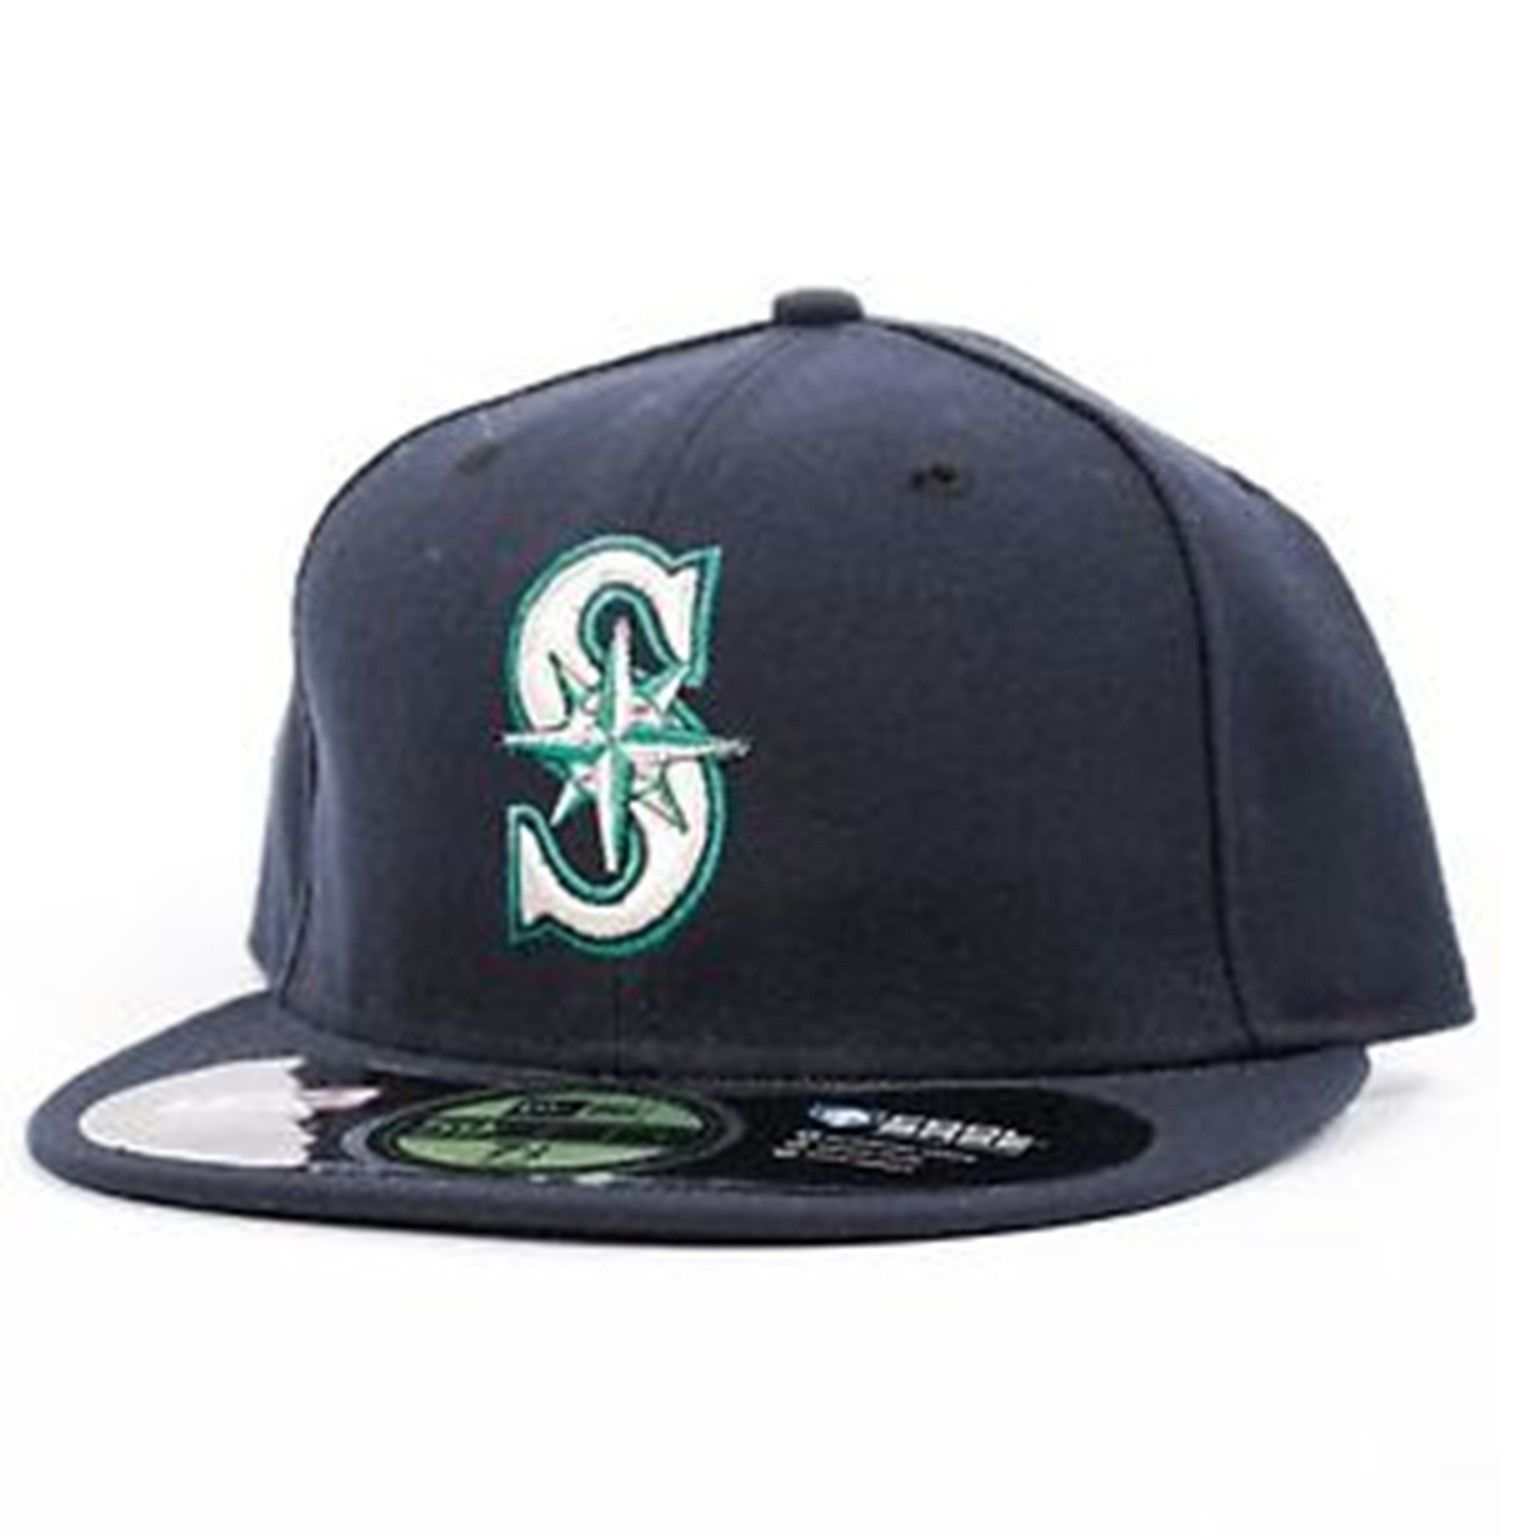 053f7228b97 Seattle Mariners New Era 59fifty Cool Base Fitted Hat Blue